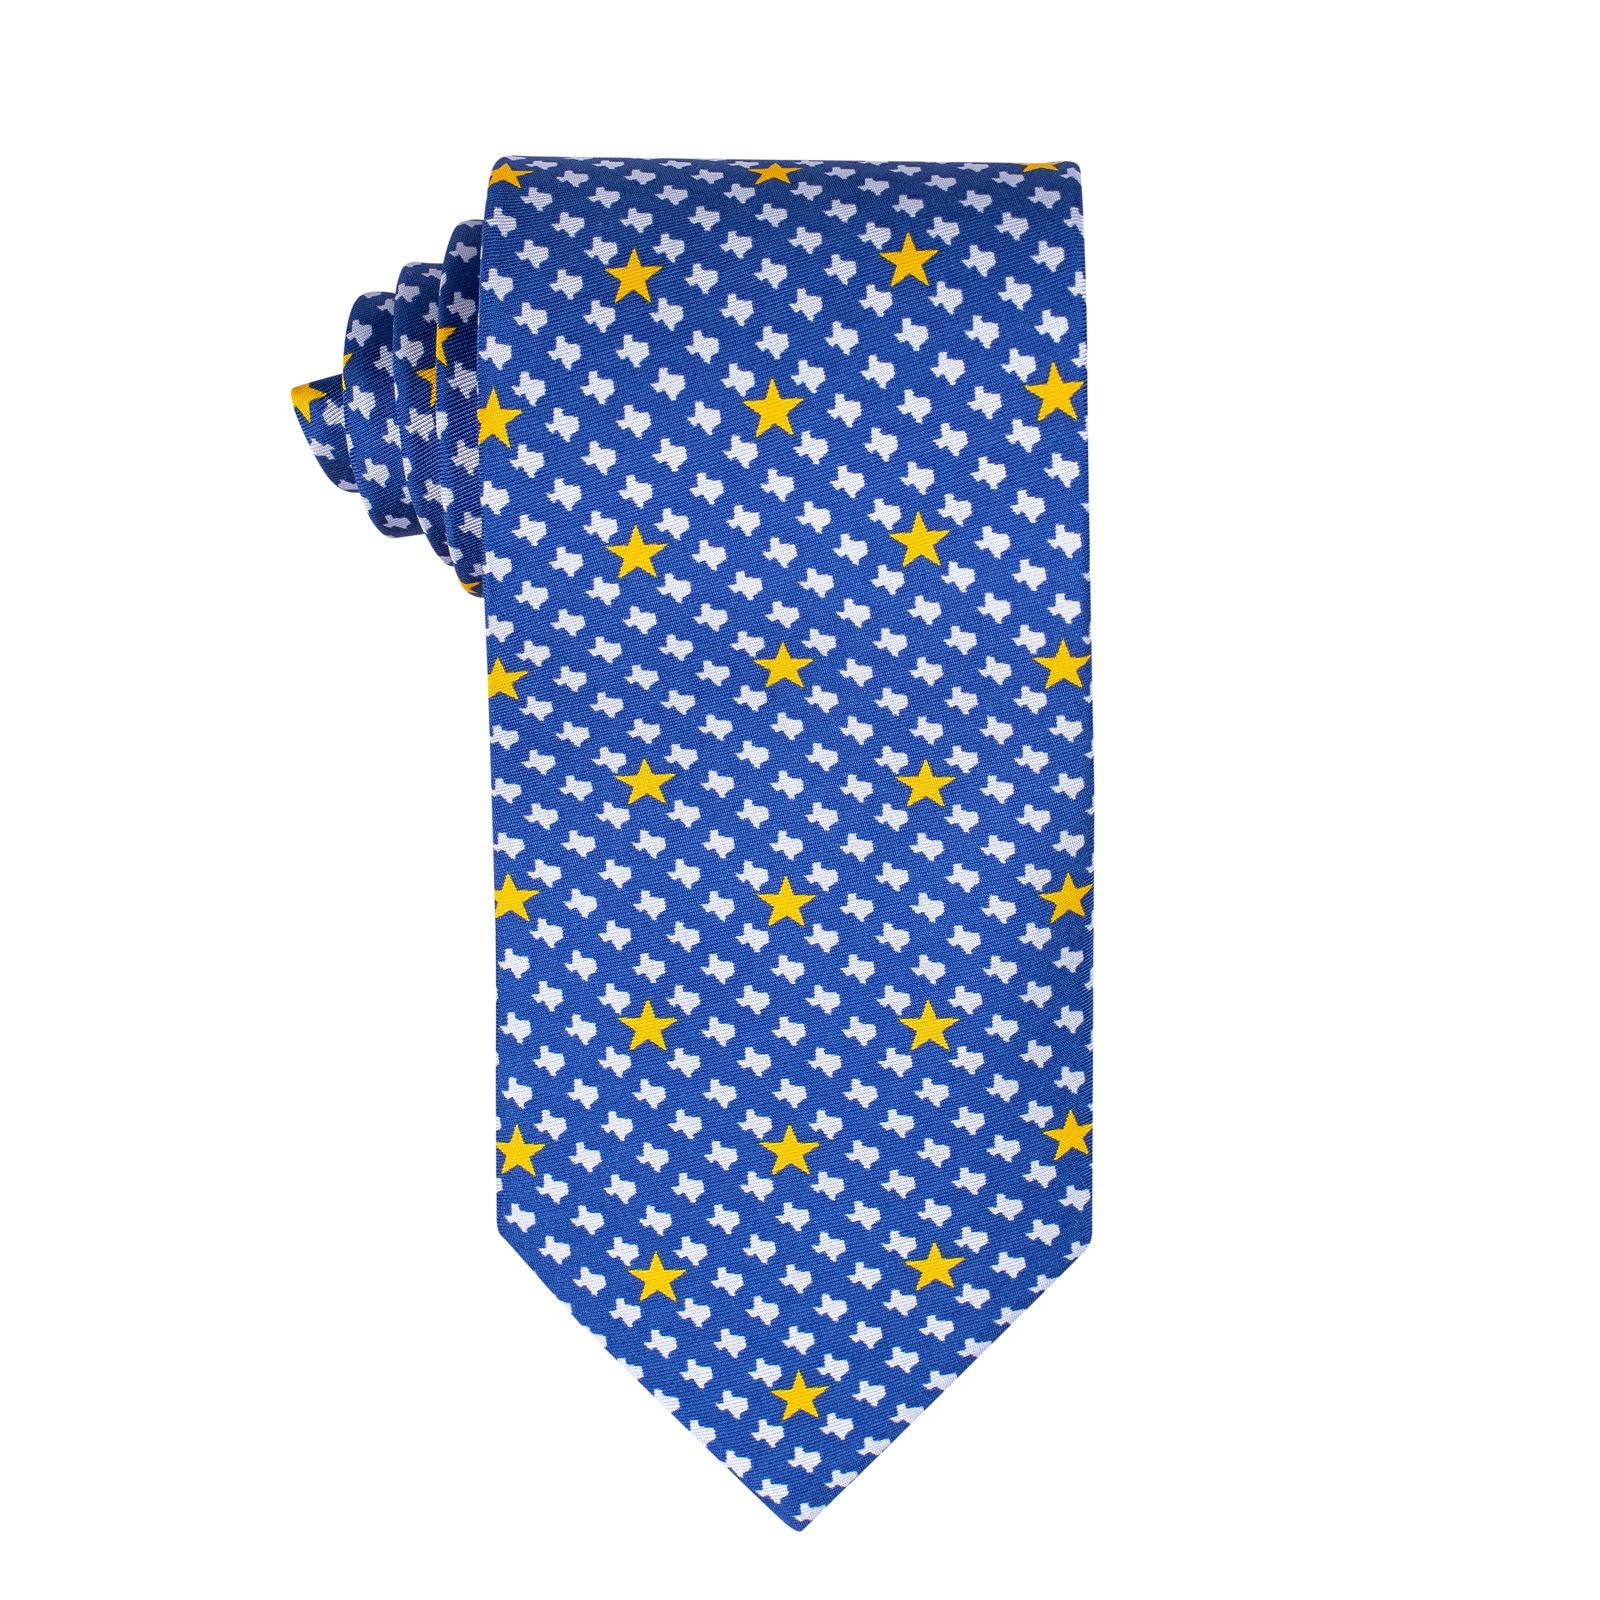 Stars Over Texas Royal Blue Silk Tie